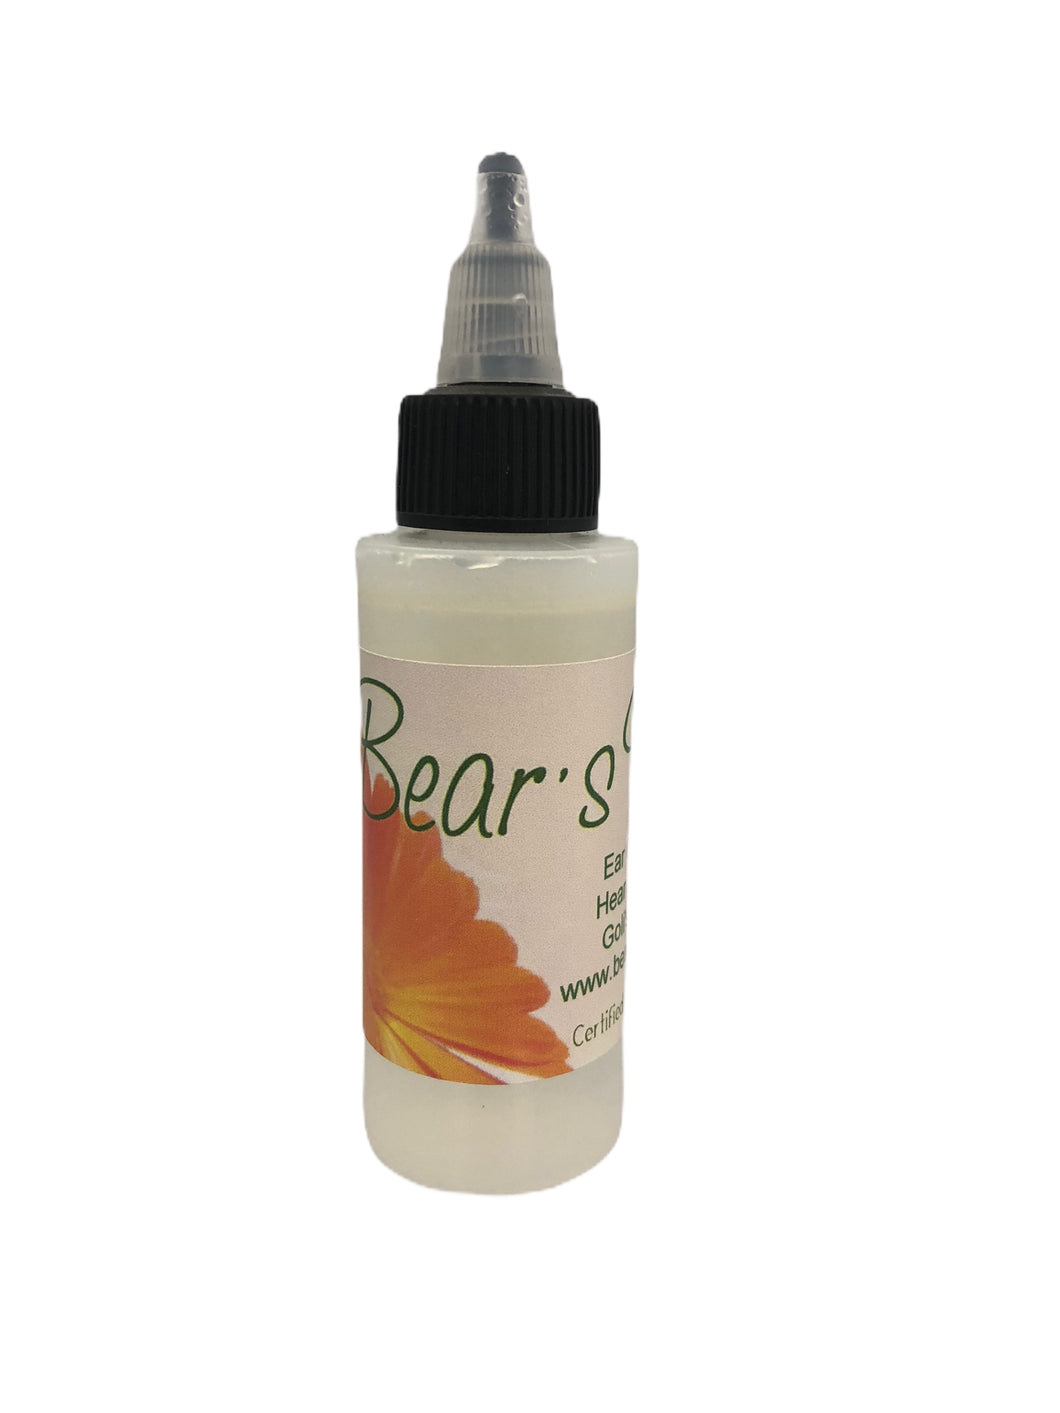 Bear's Pause Hear Me Out - 2oz squeeze bottle - Dog